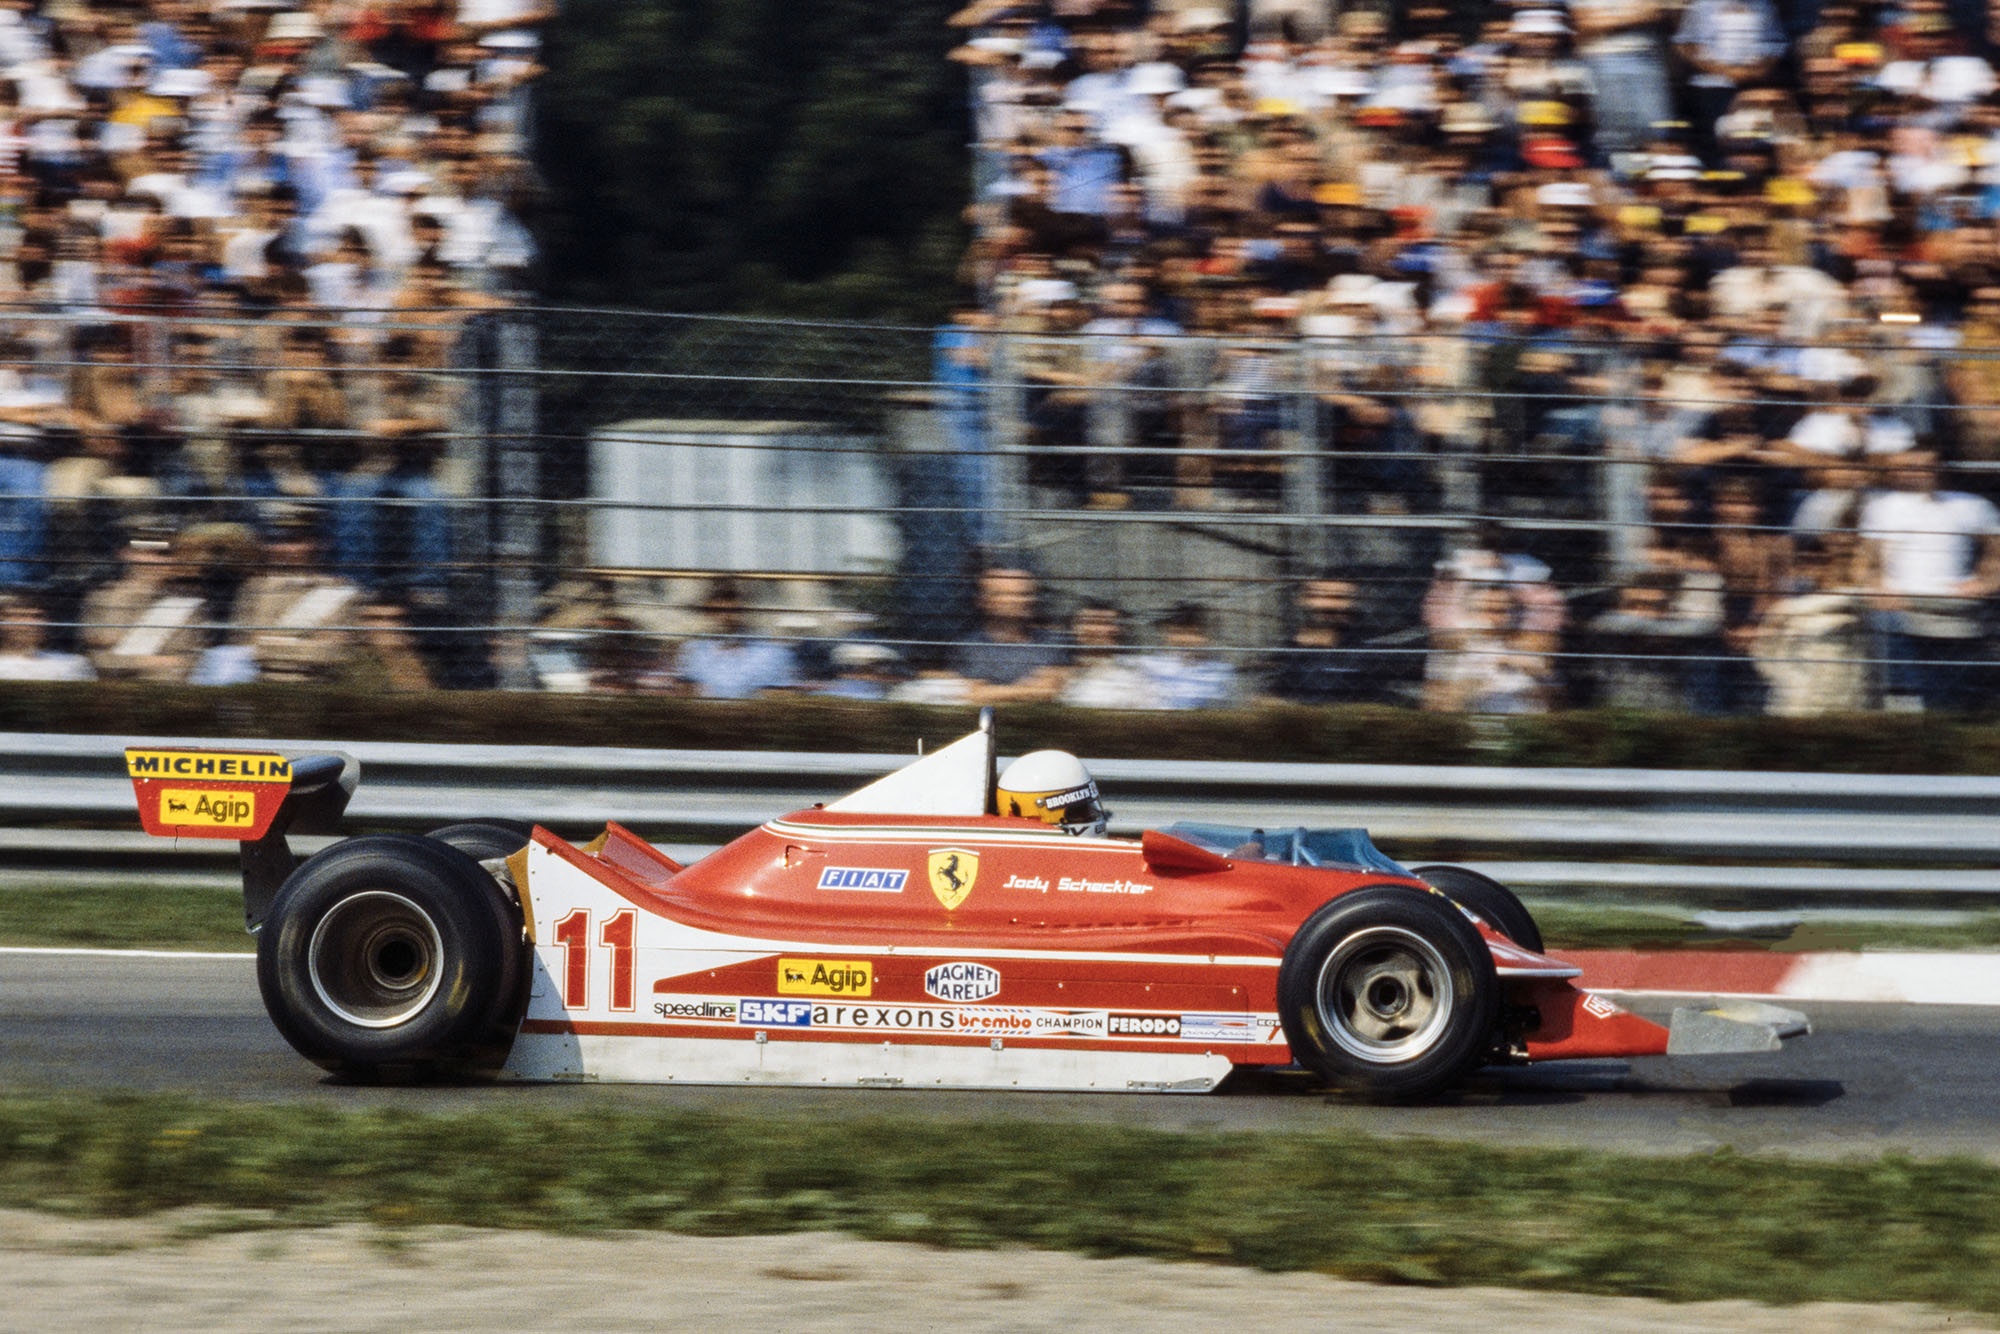 1979 Italian GP feature